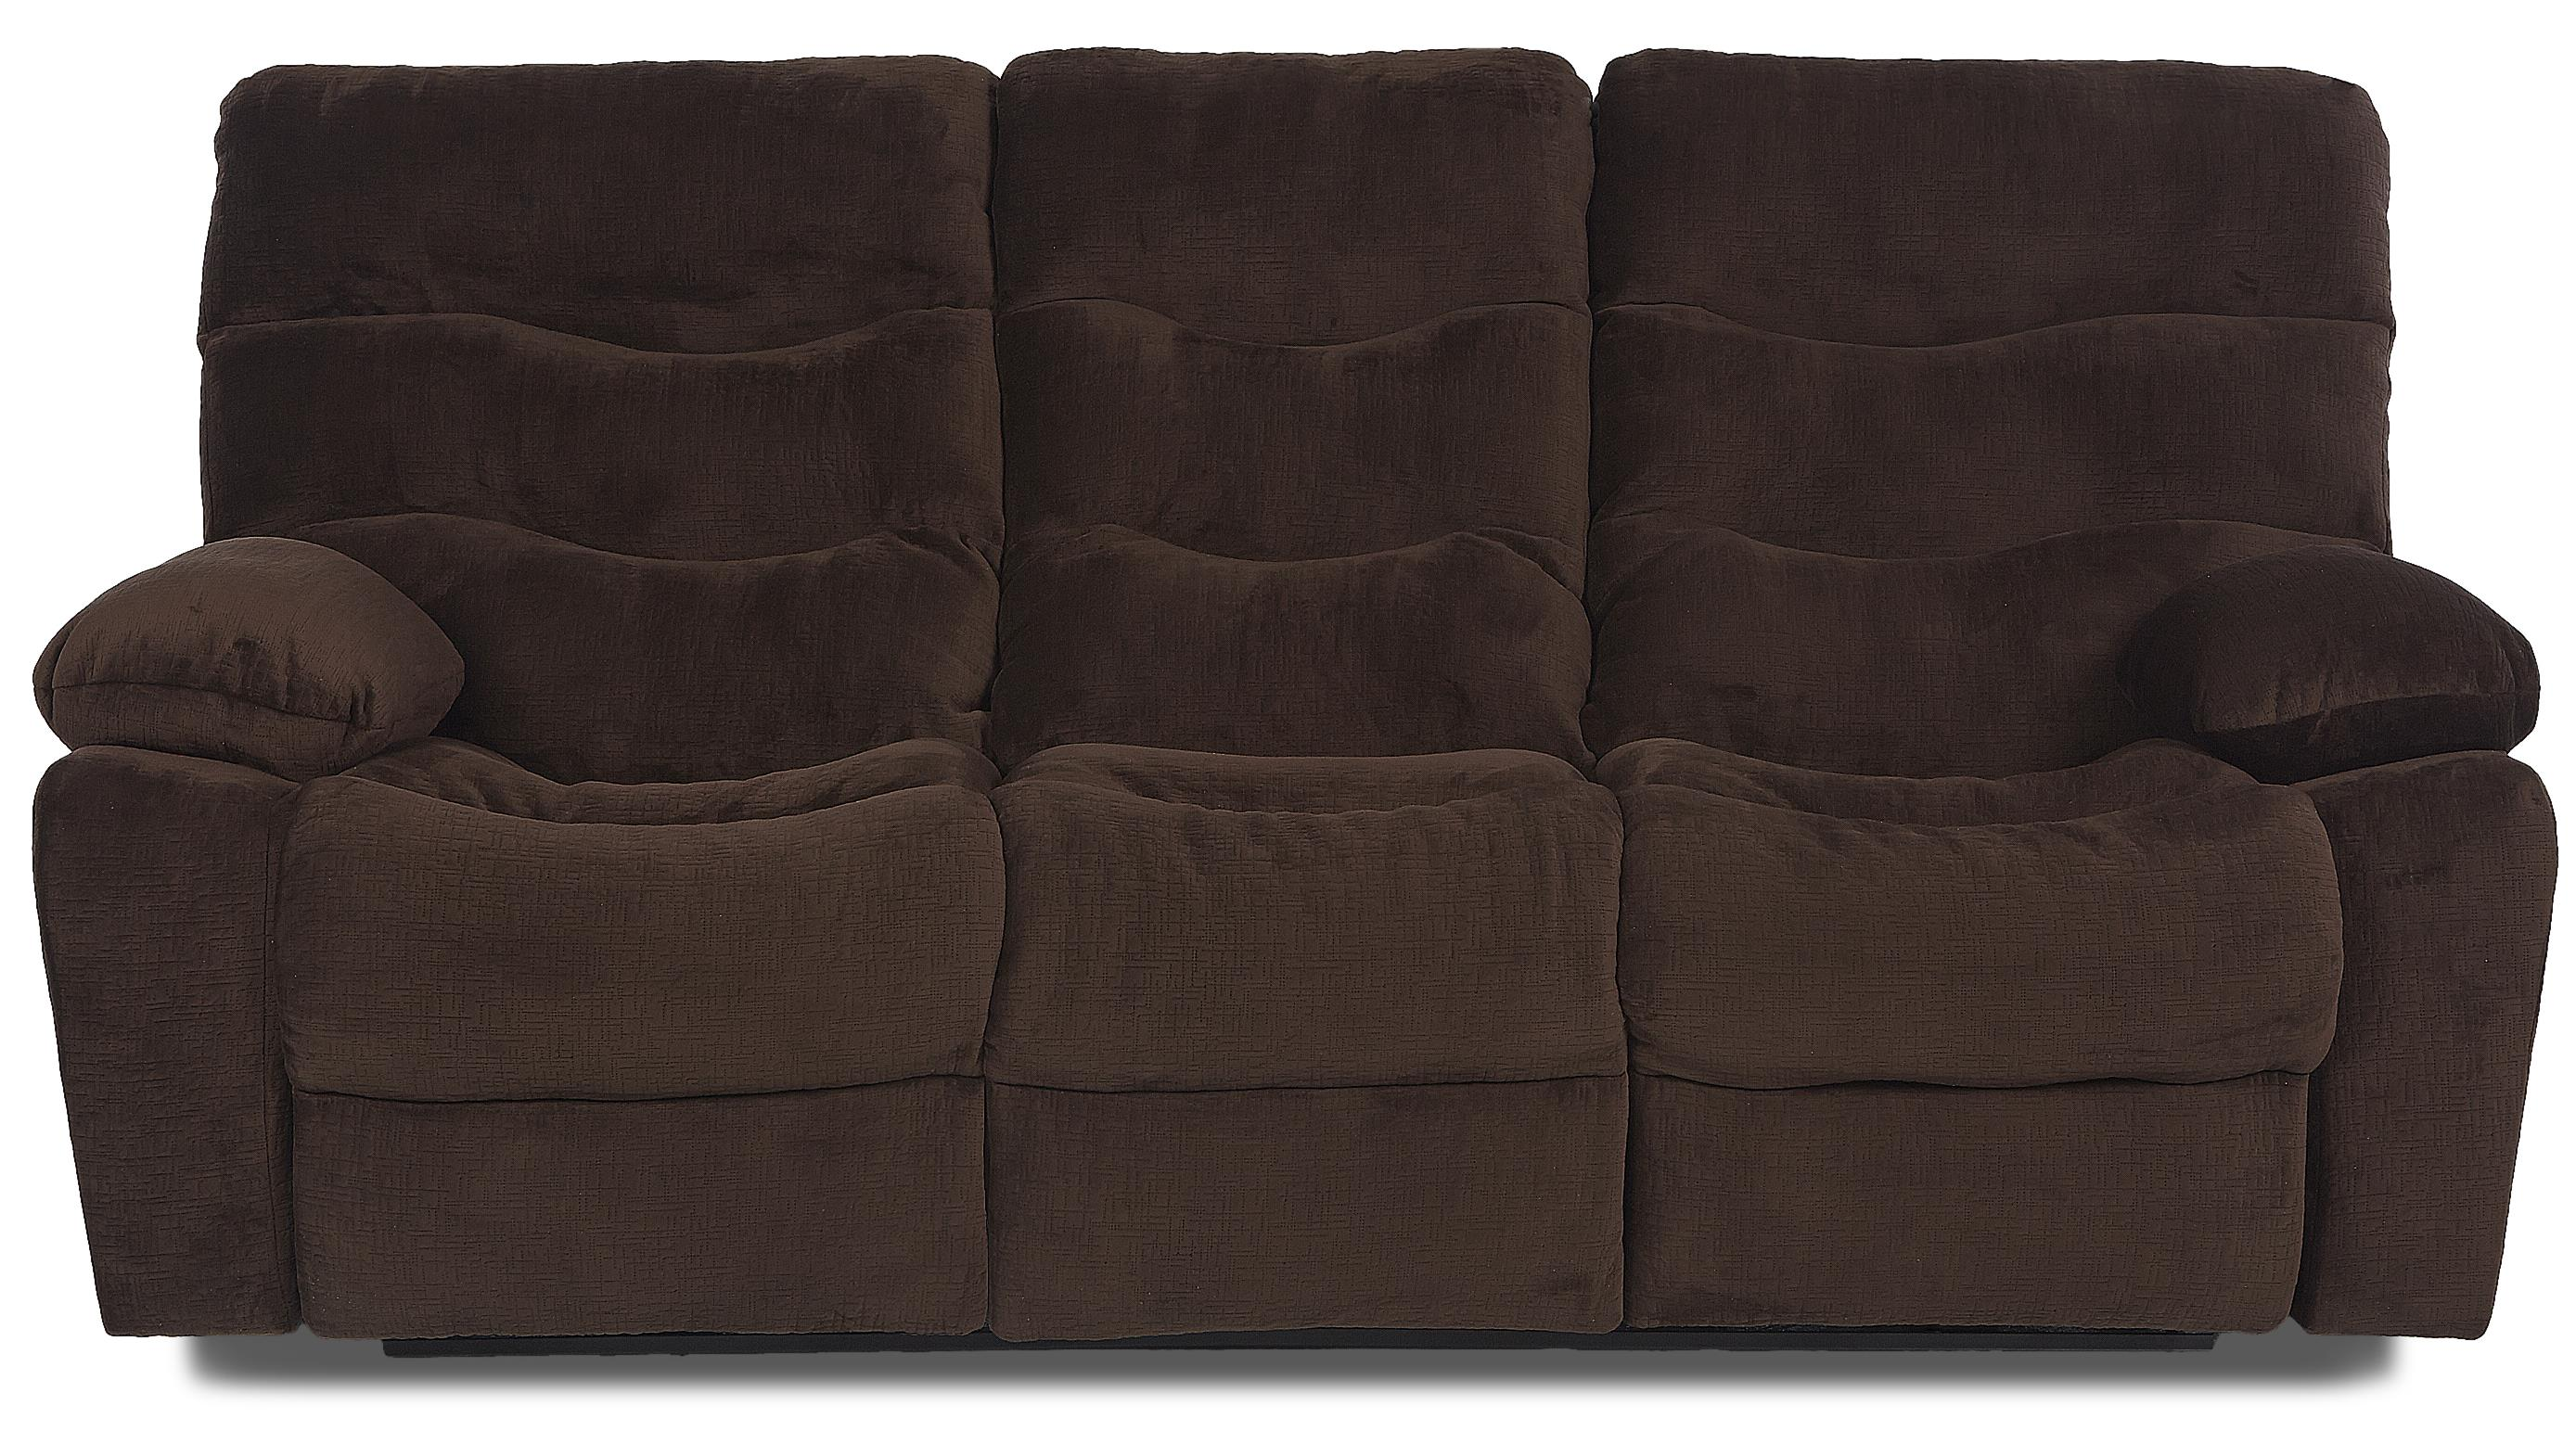 Klaussner Hercules Reclining Sofa - Item Number: 27403 RS-EtchChocolate